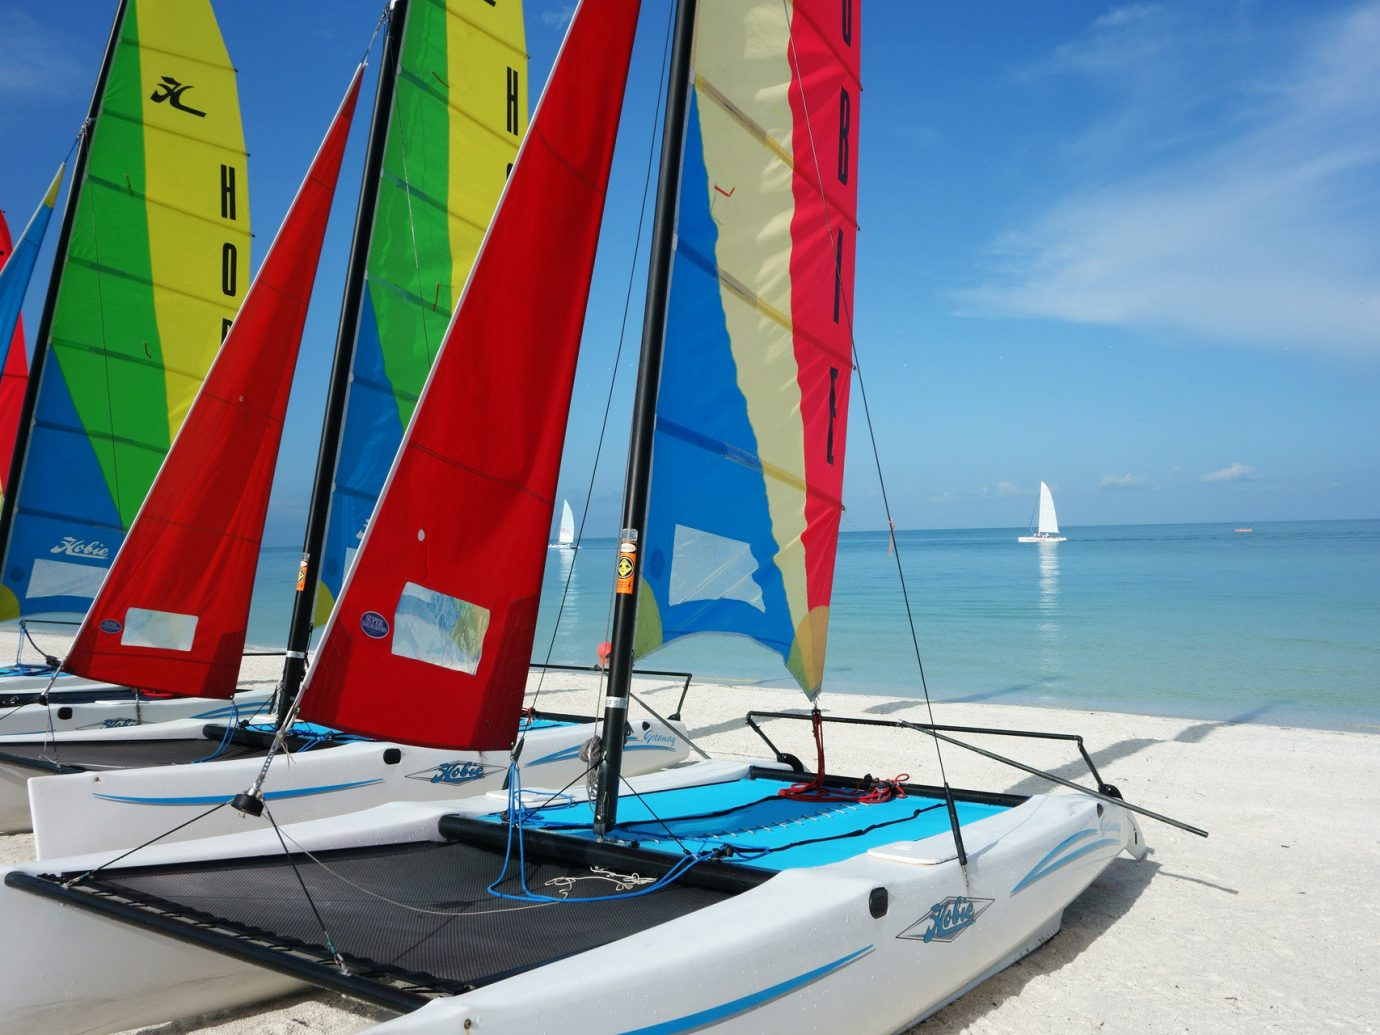 Hotels Secret Getaways Trip Ideas outdoor Boat water sky sailboat sail vehicle sailing watercraft transport dinghy sailing ship Sea catamaran sailing ship keelboat mast yacht wind sailboat racing yacht racing